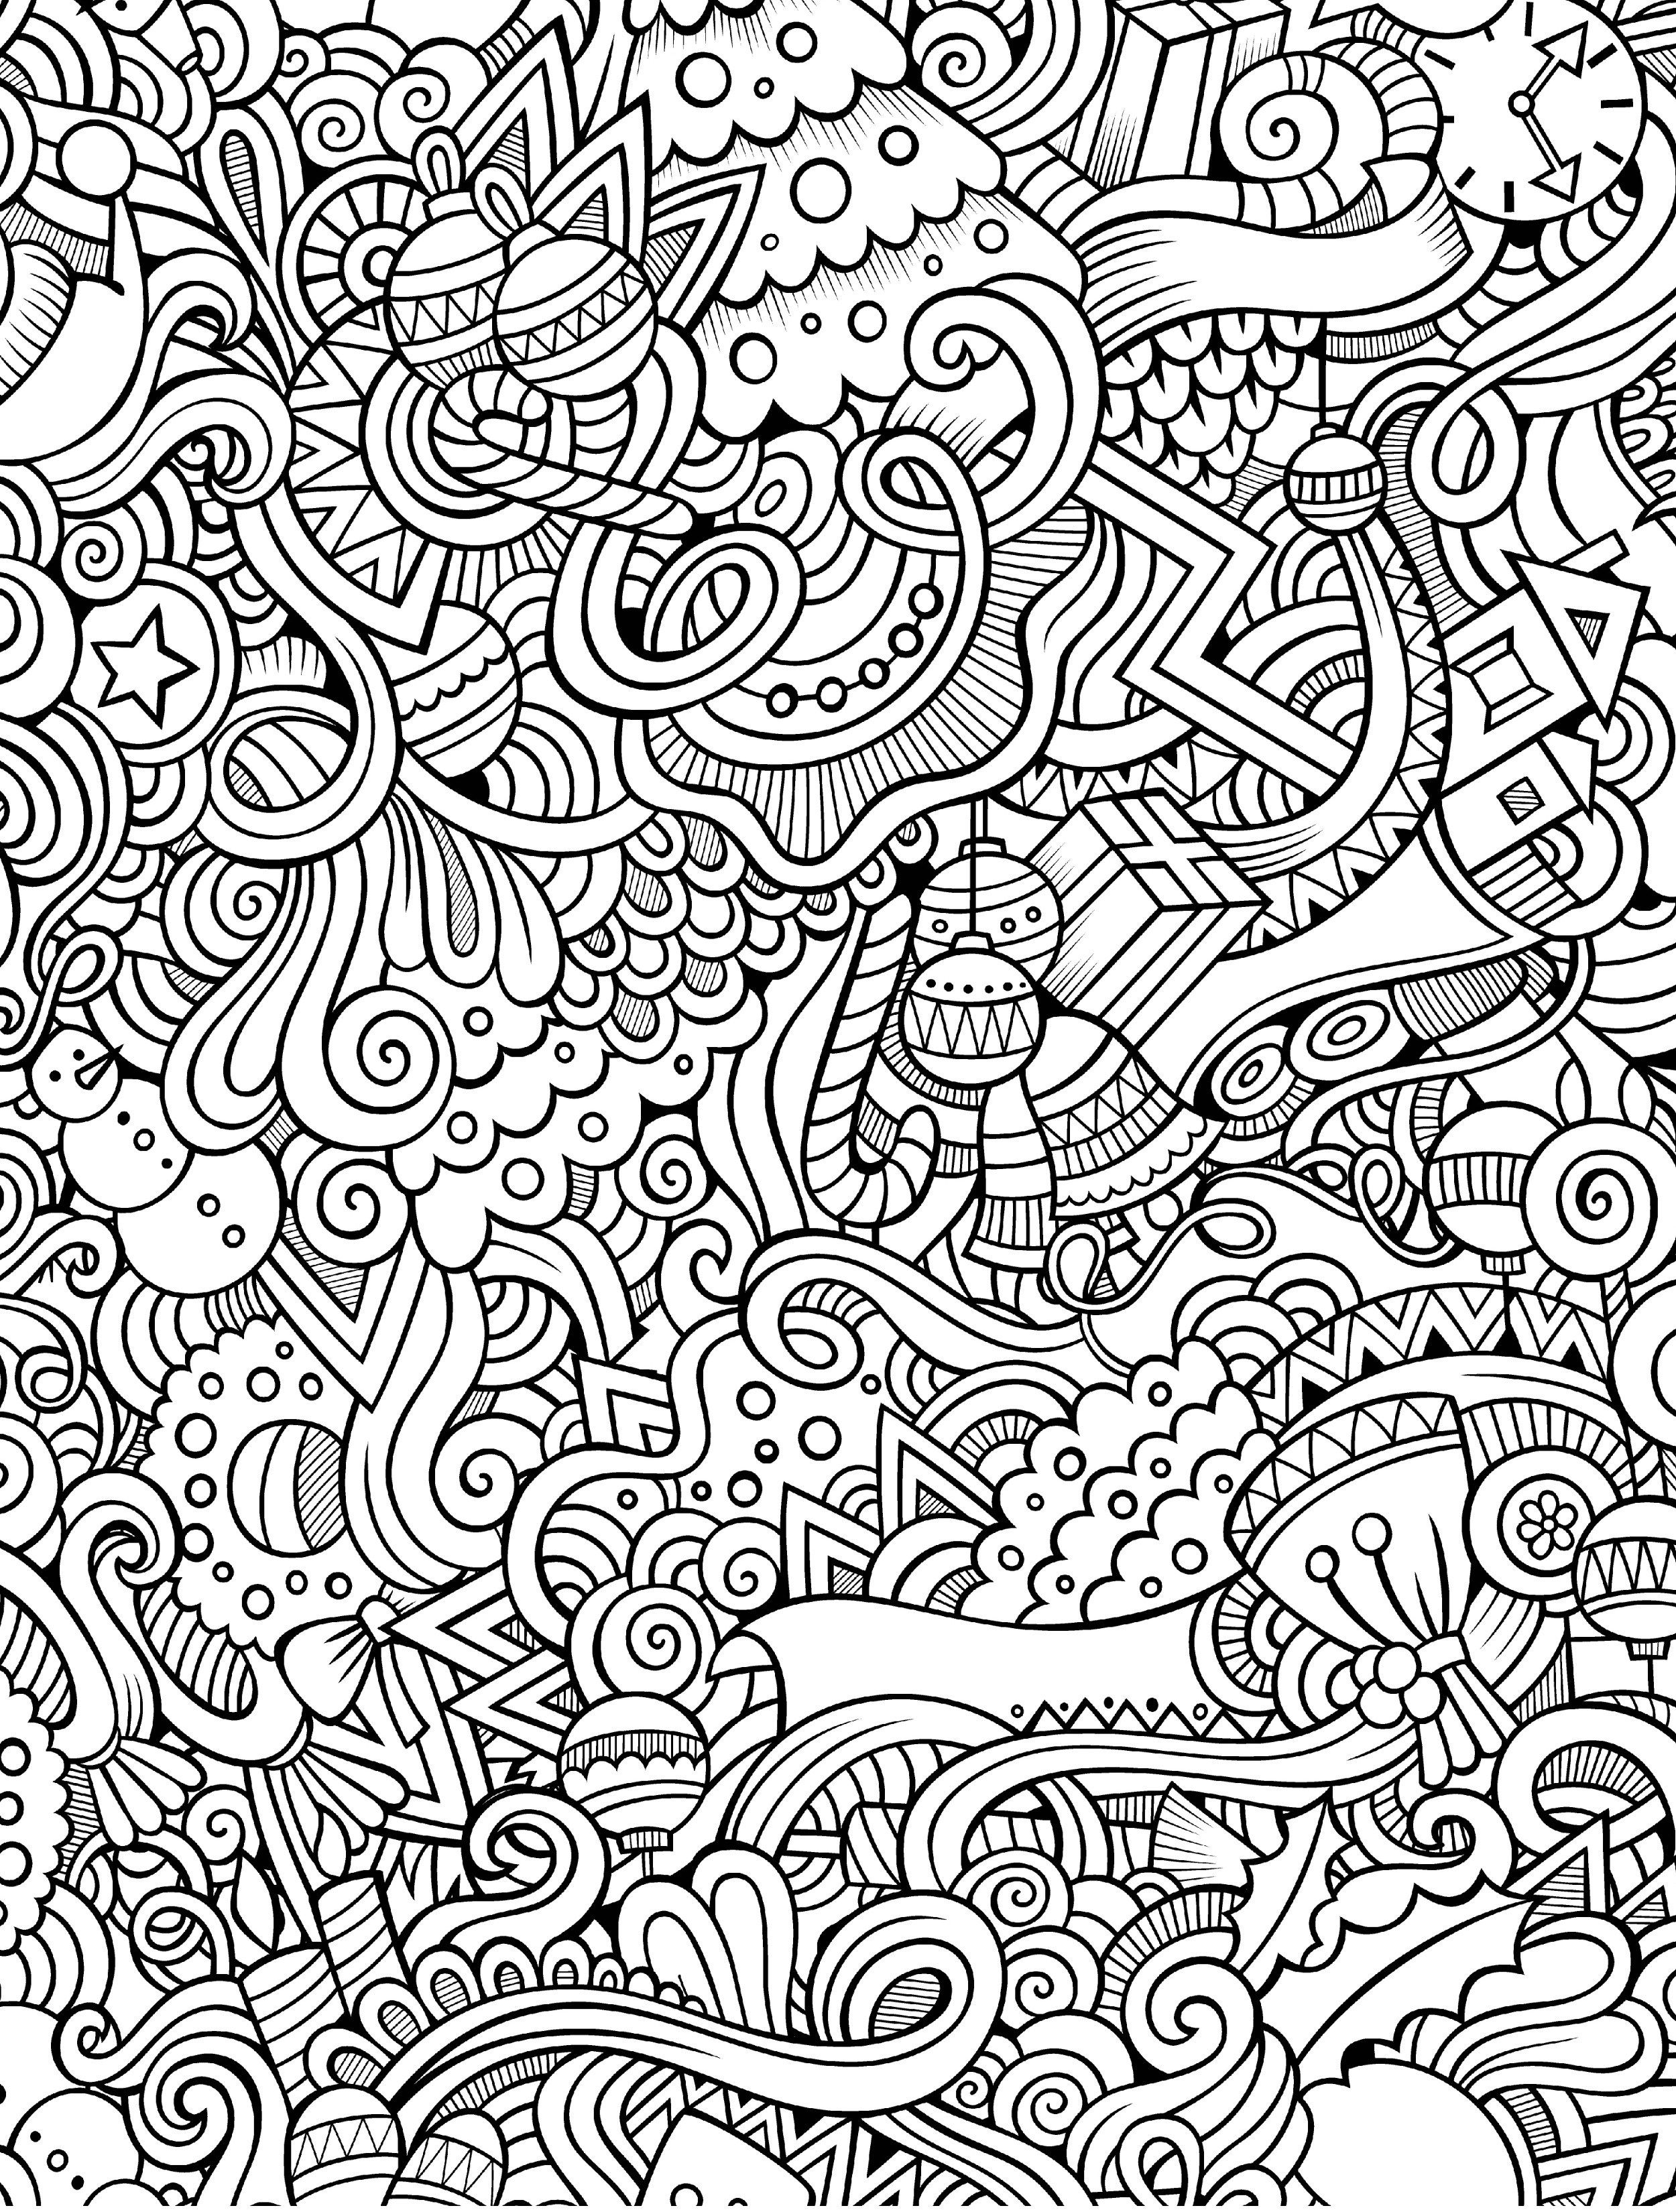 10 Free Printable Holiday Adult Coloring Pages  Coloring -3976